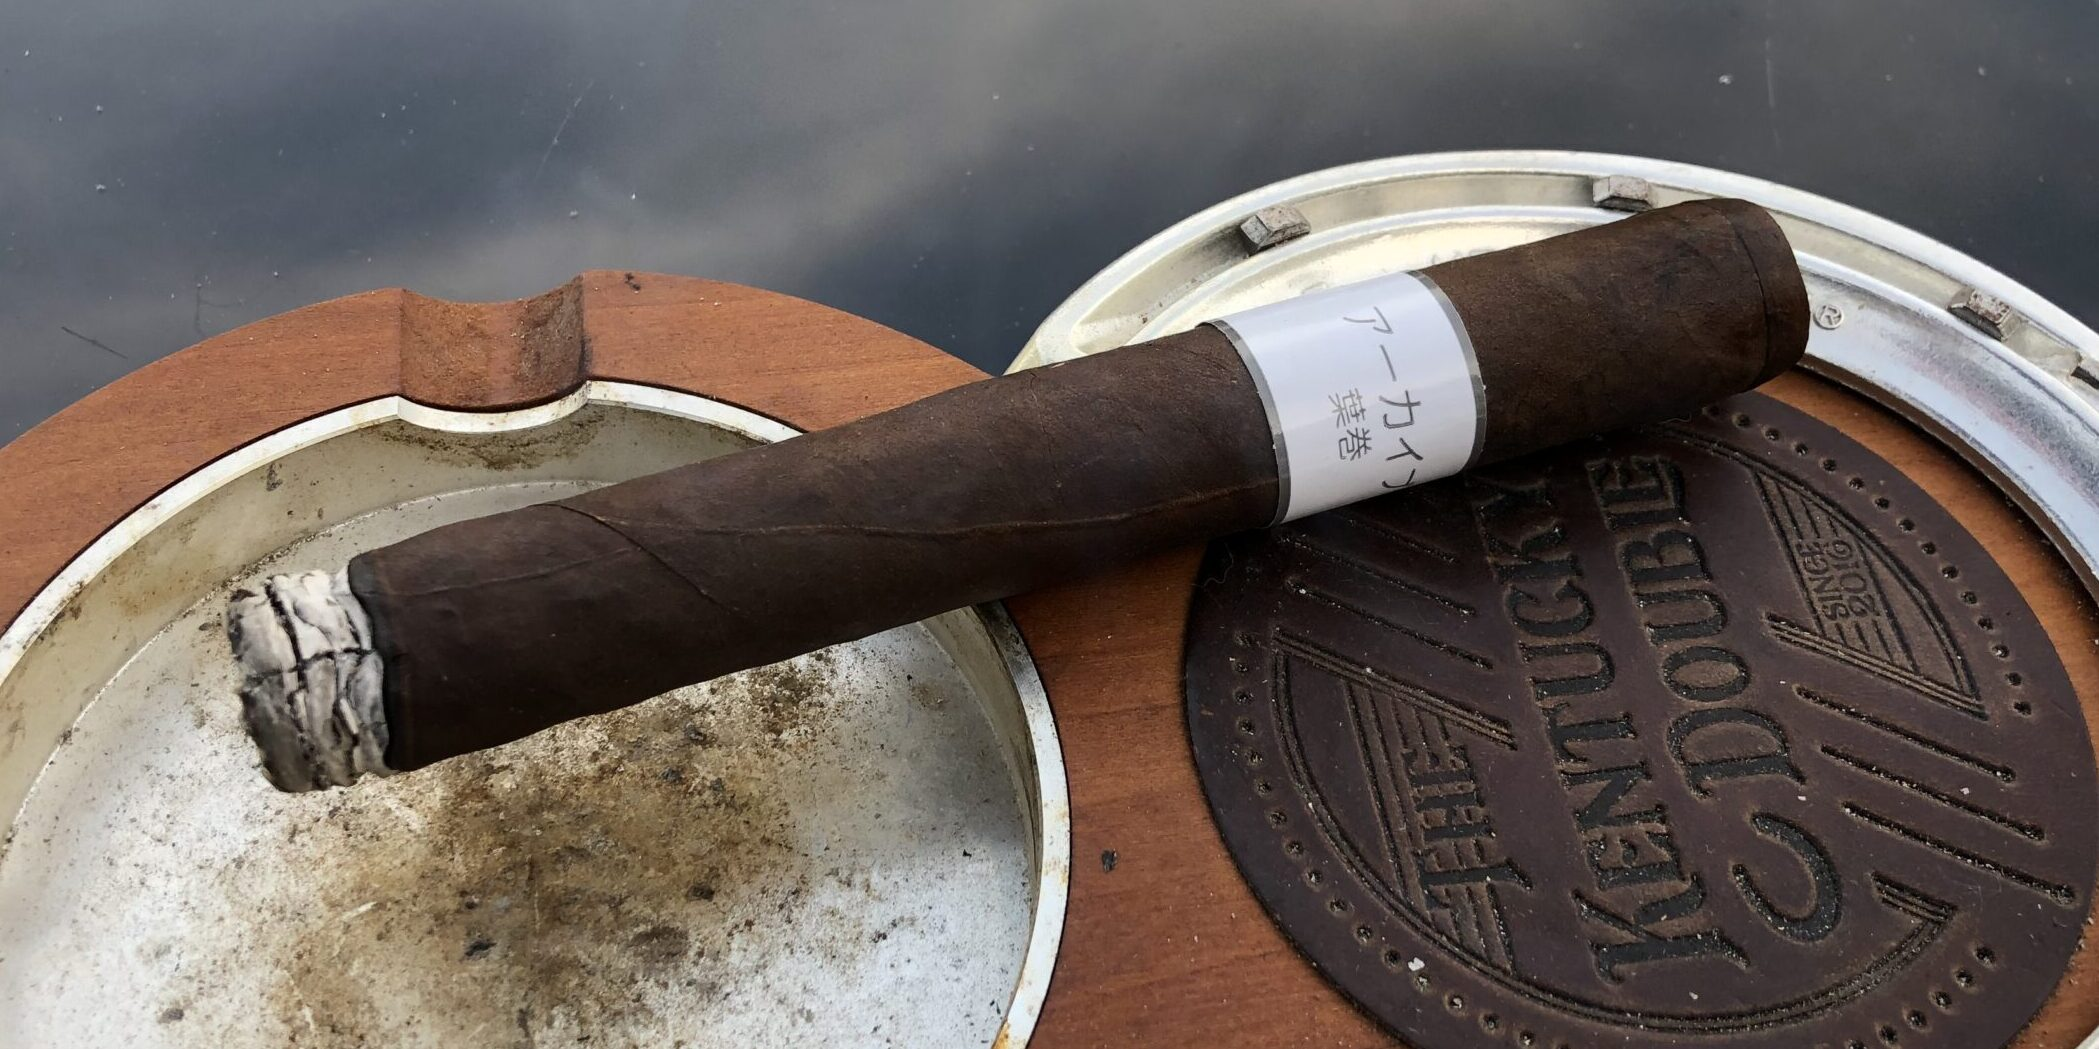 You are currently viewing Archive Cigars Japan Highland Maduro Toro Cigar Review